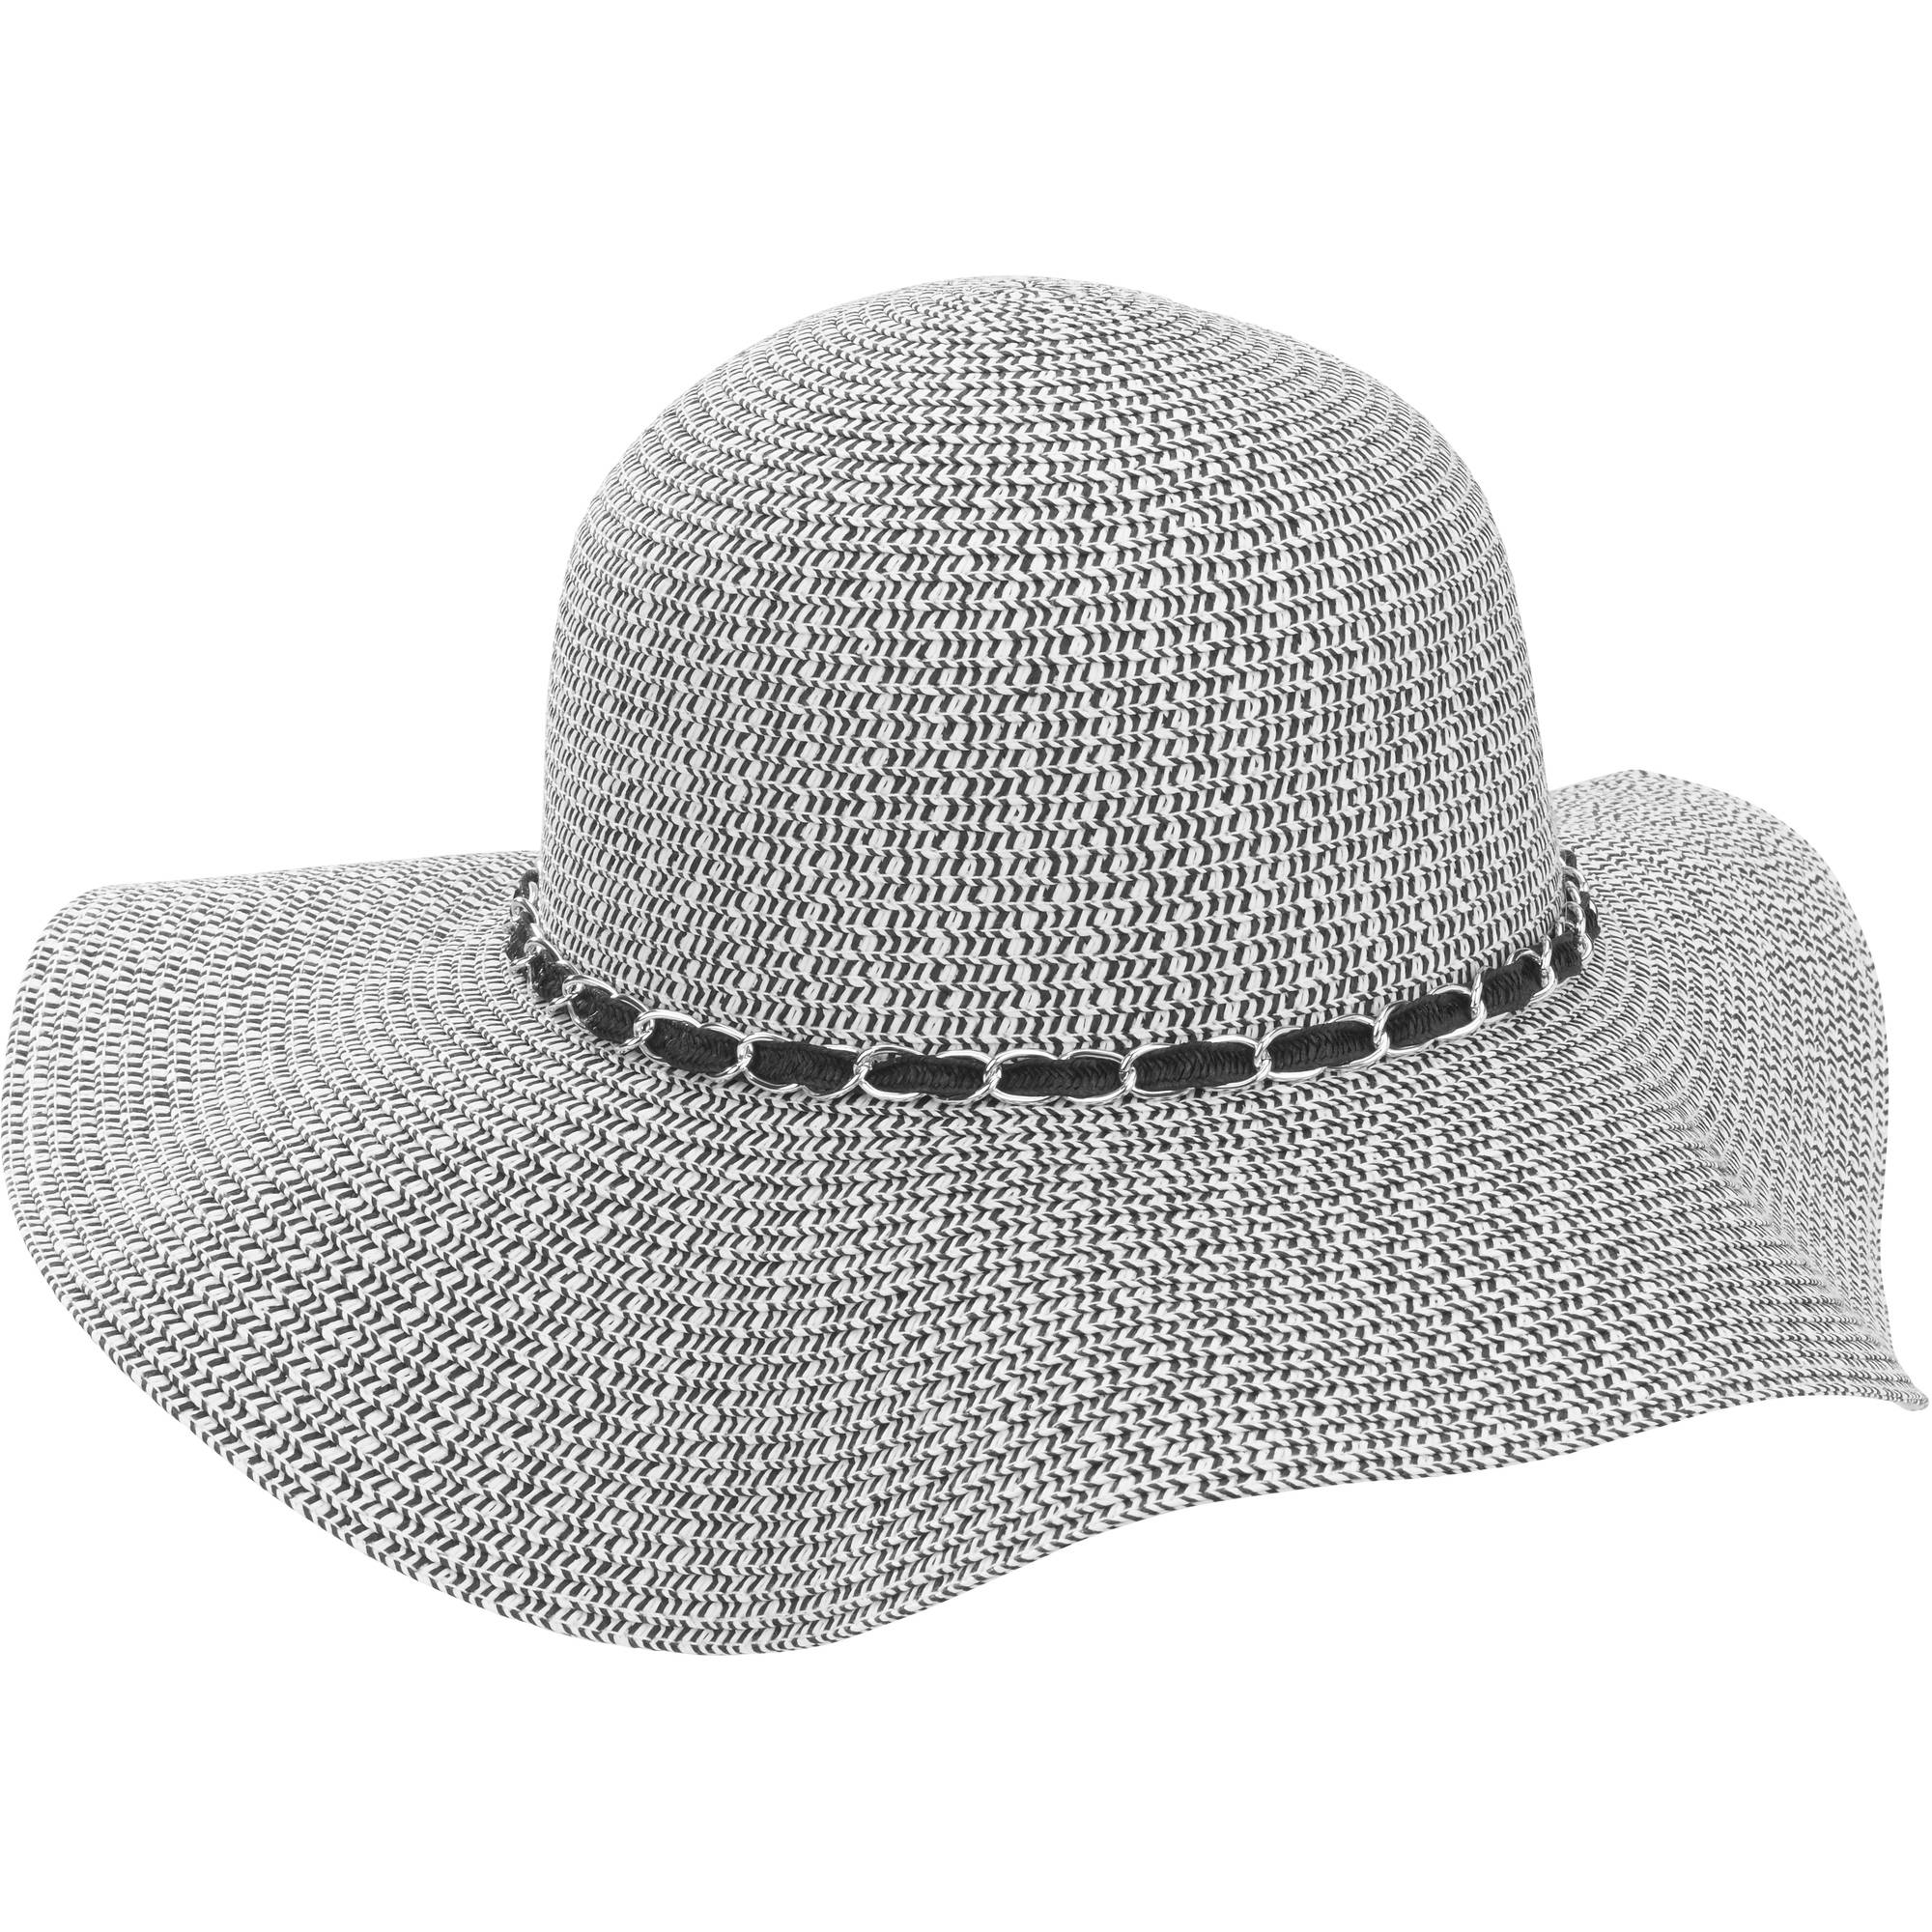 Women's Floppy Hat With Chain Detail